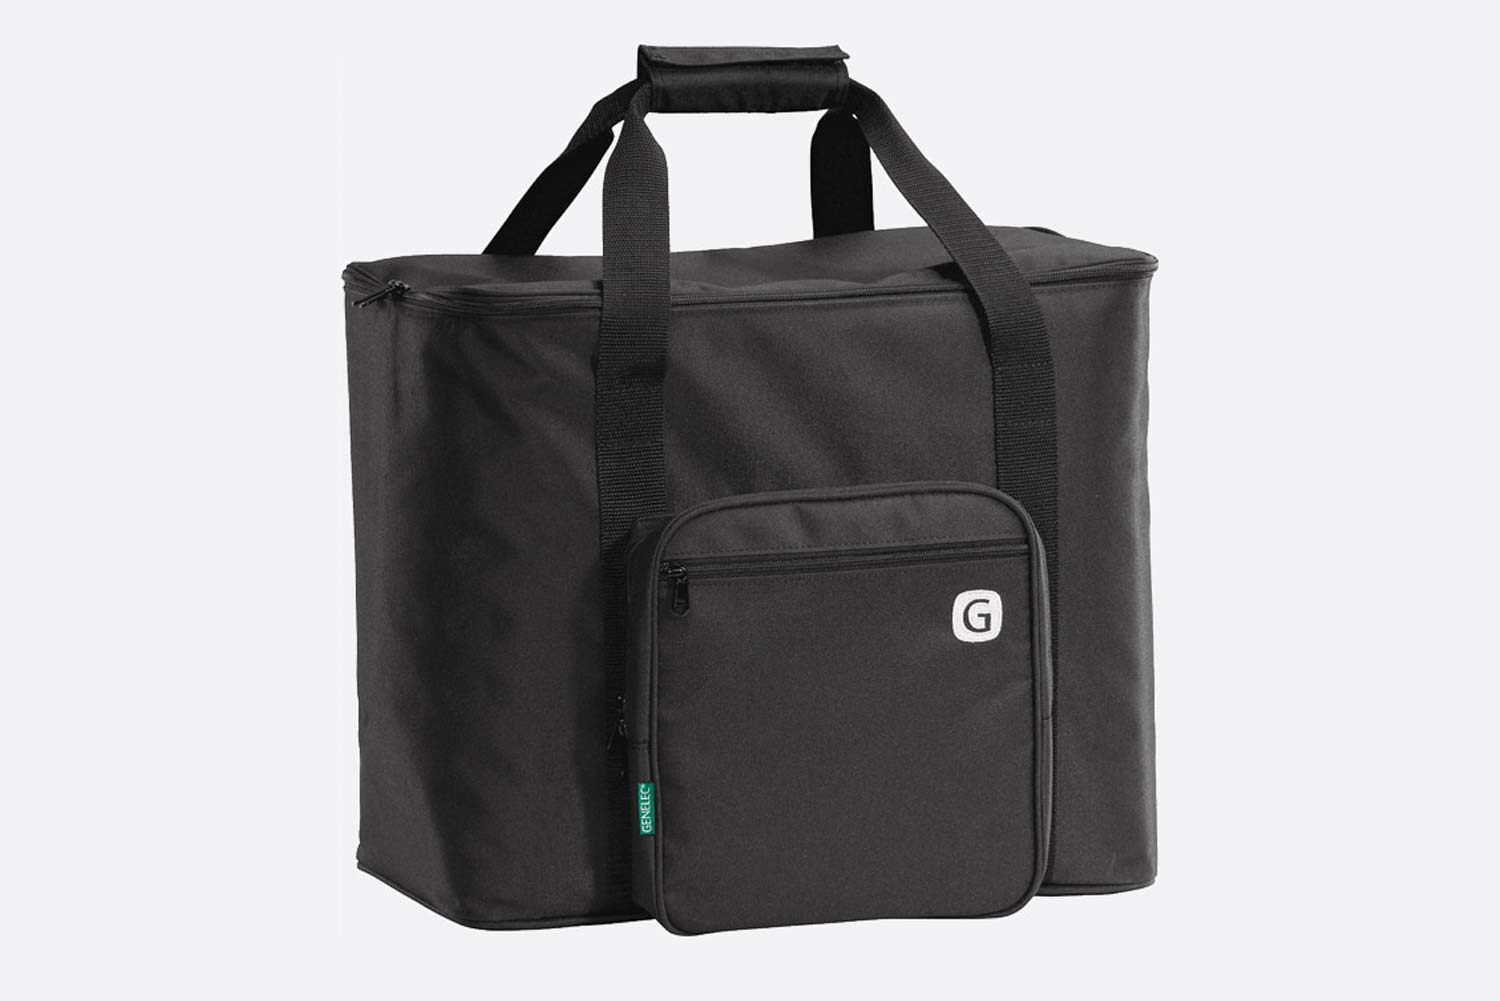 Genelec 8030 carry bag